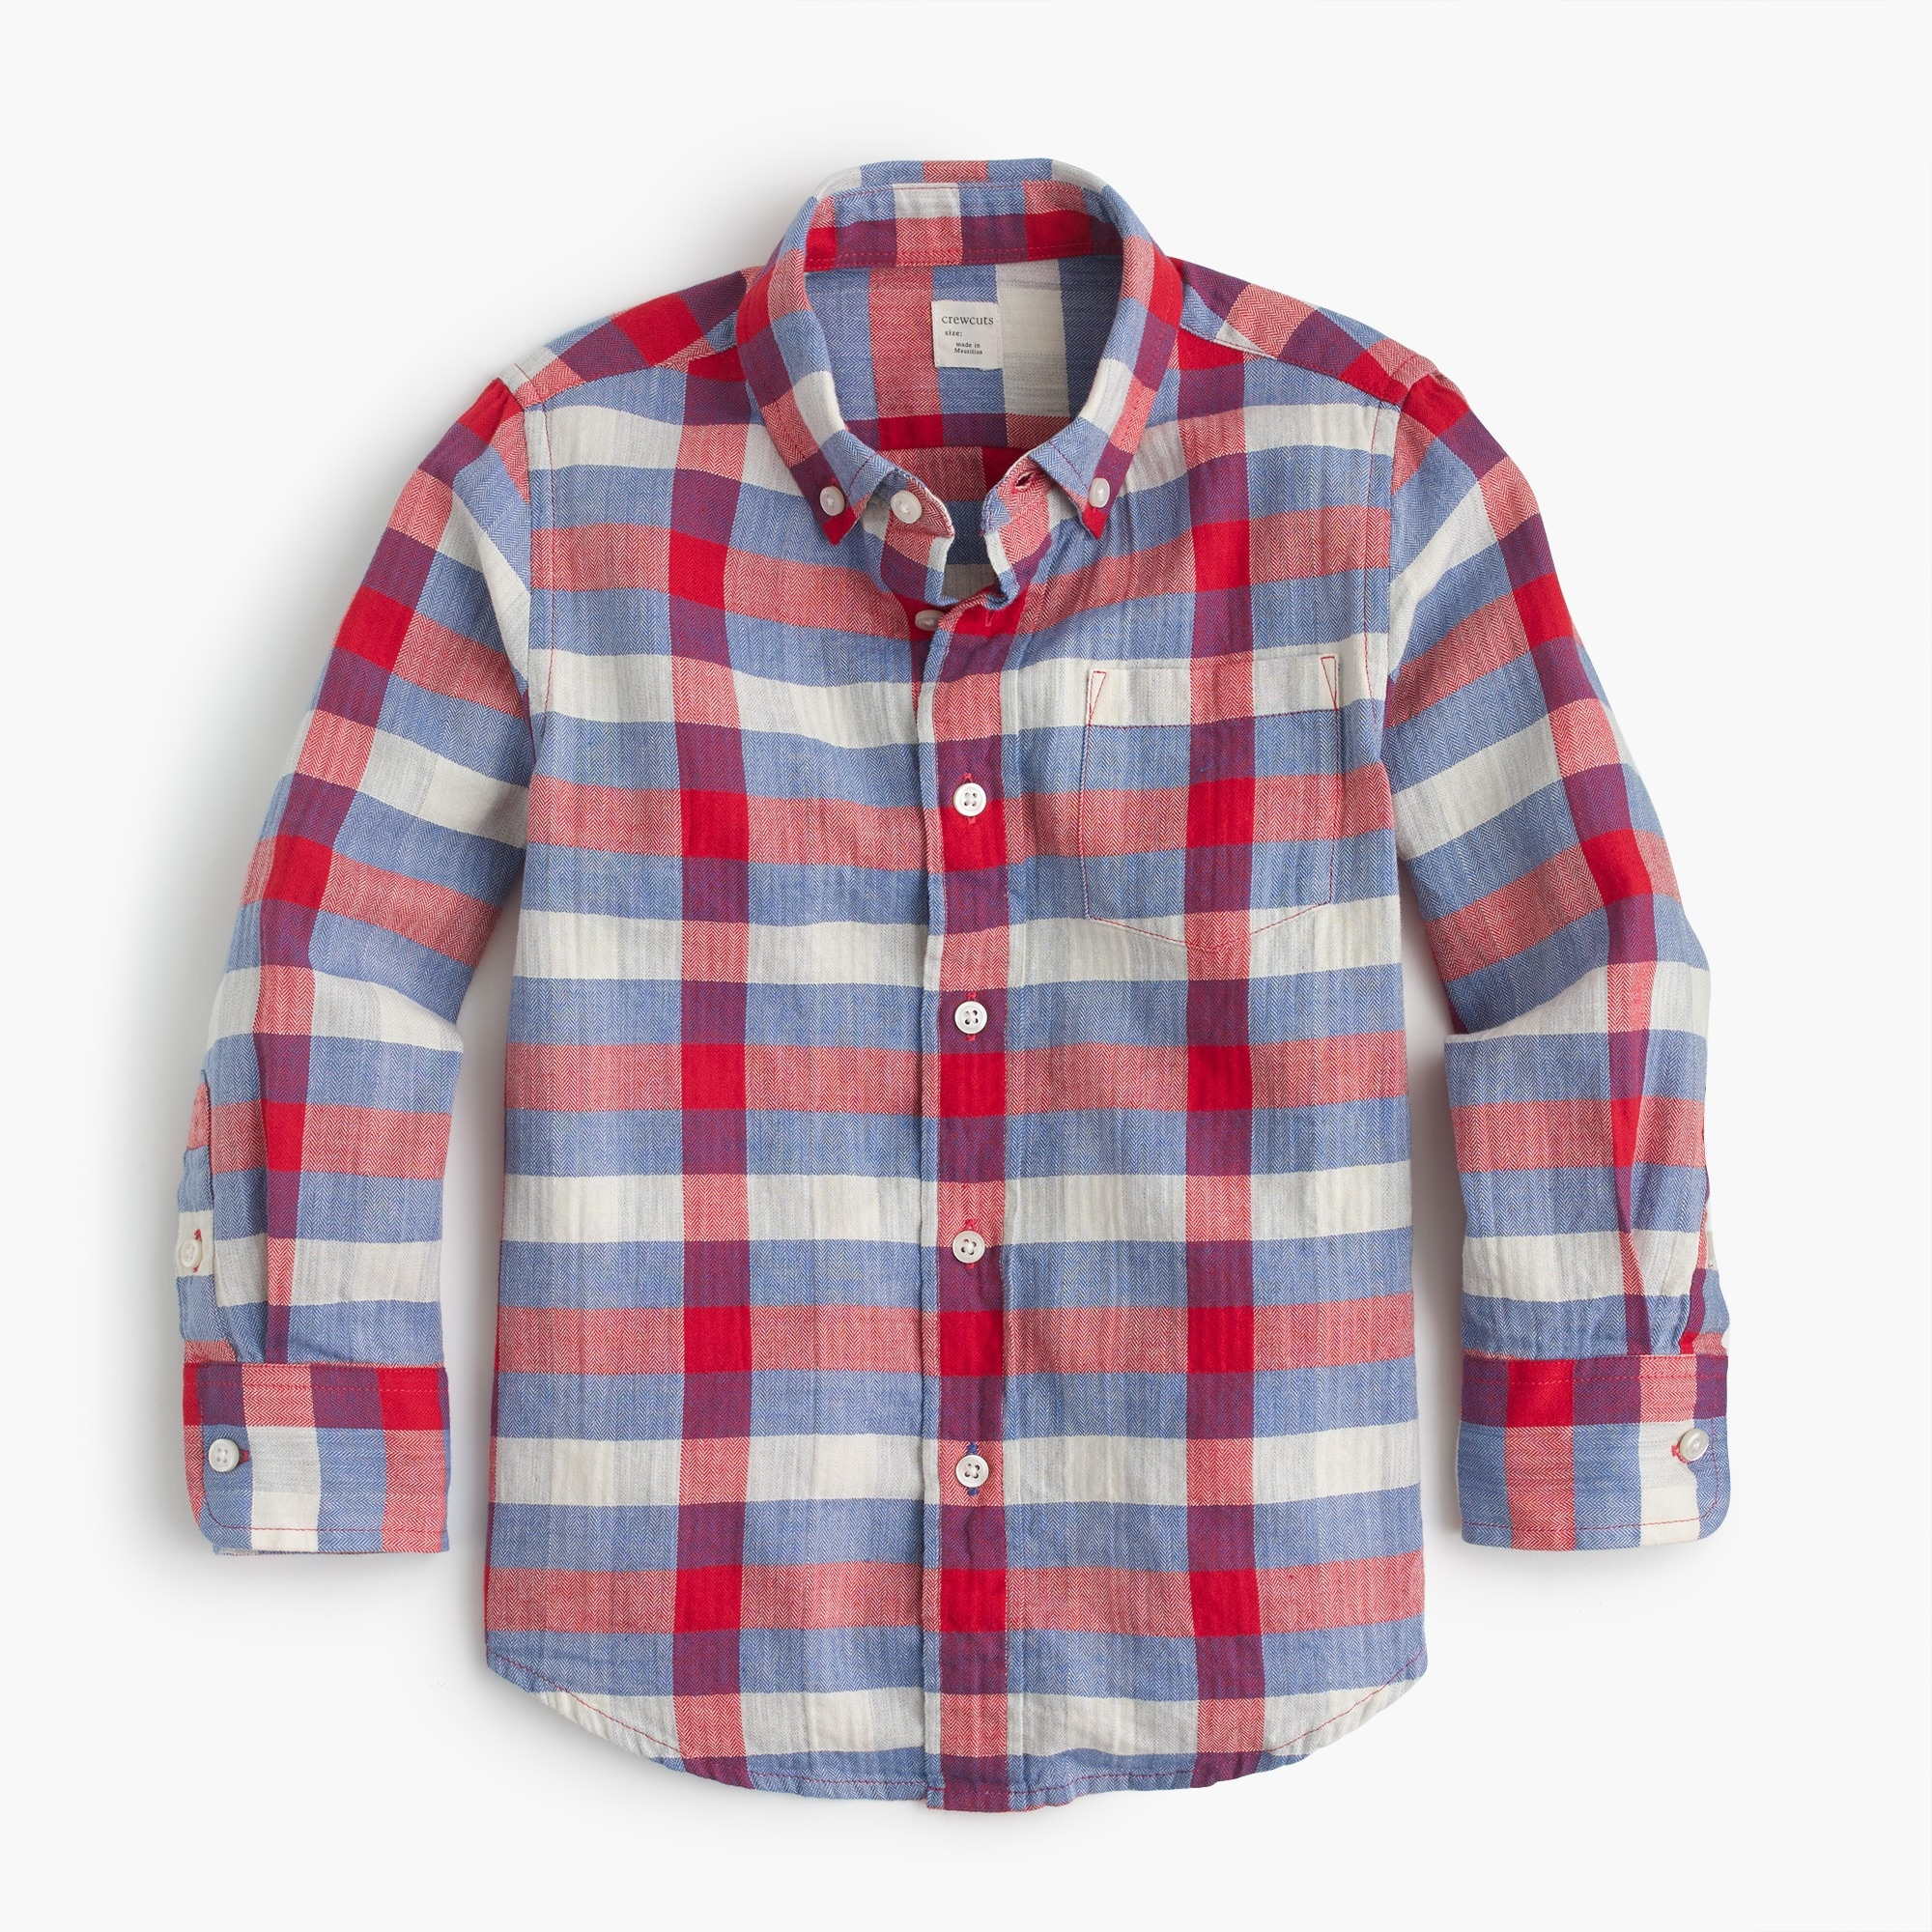 kids' flannel shirt in herringbone plaid - boys' tops